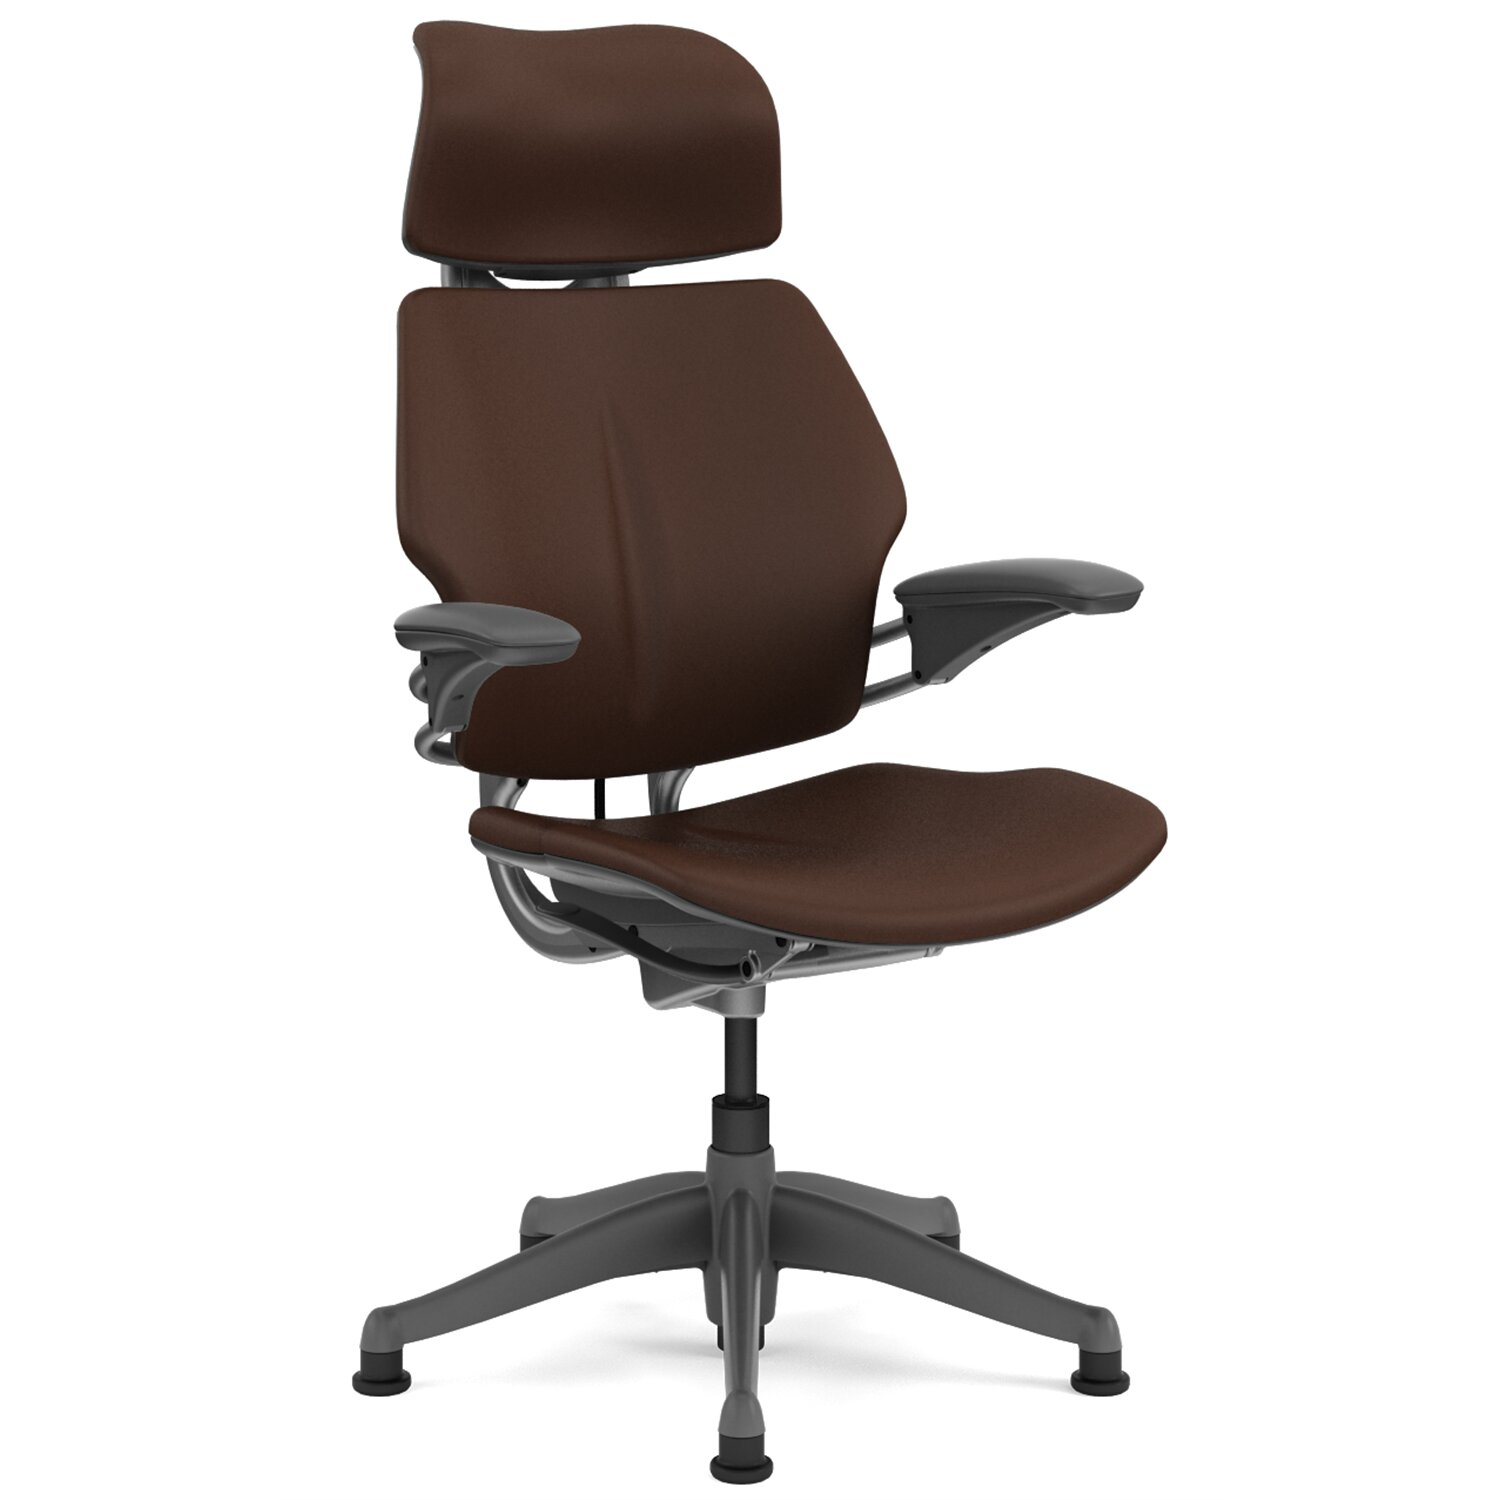 Headrest For Office Chair Office Chair With Headrest